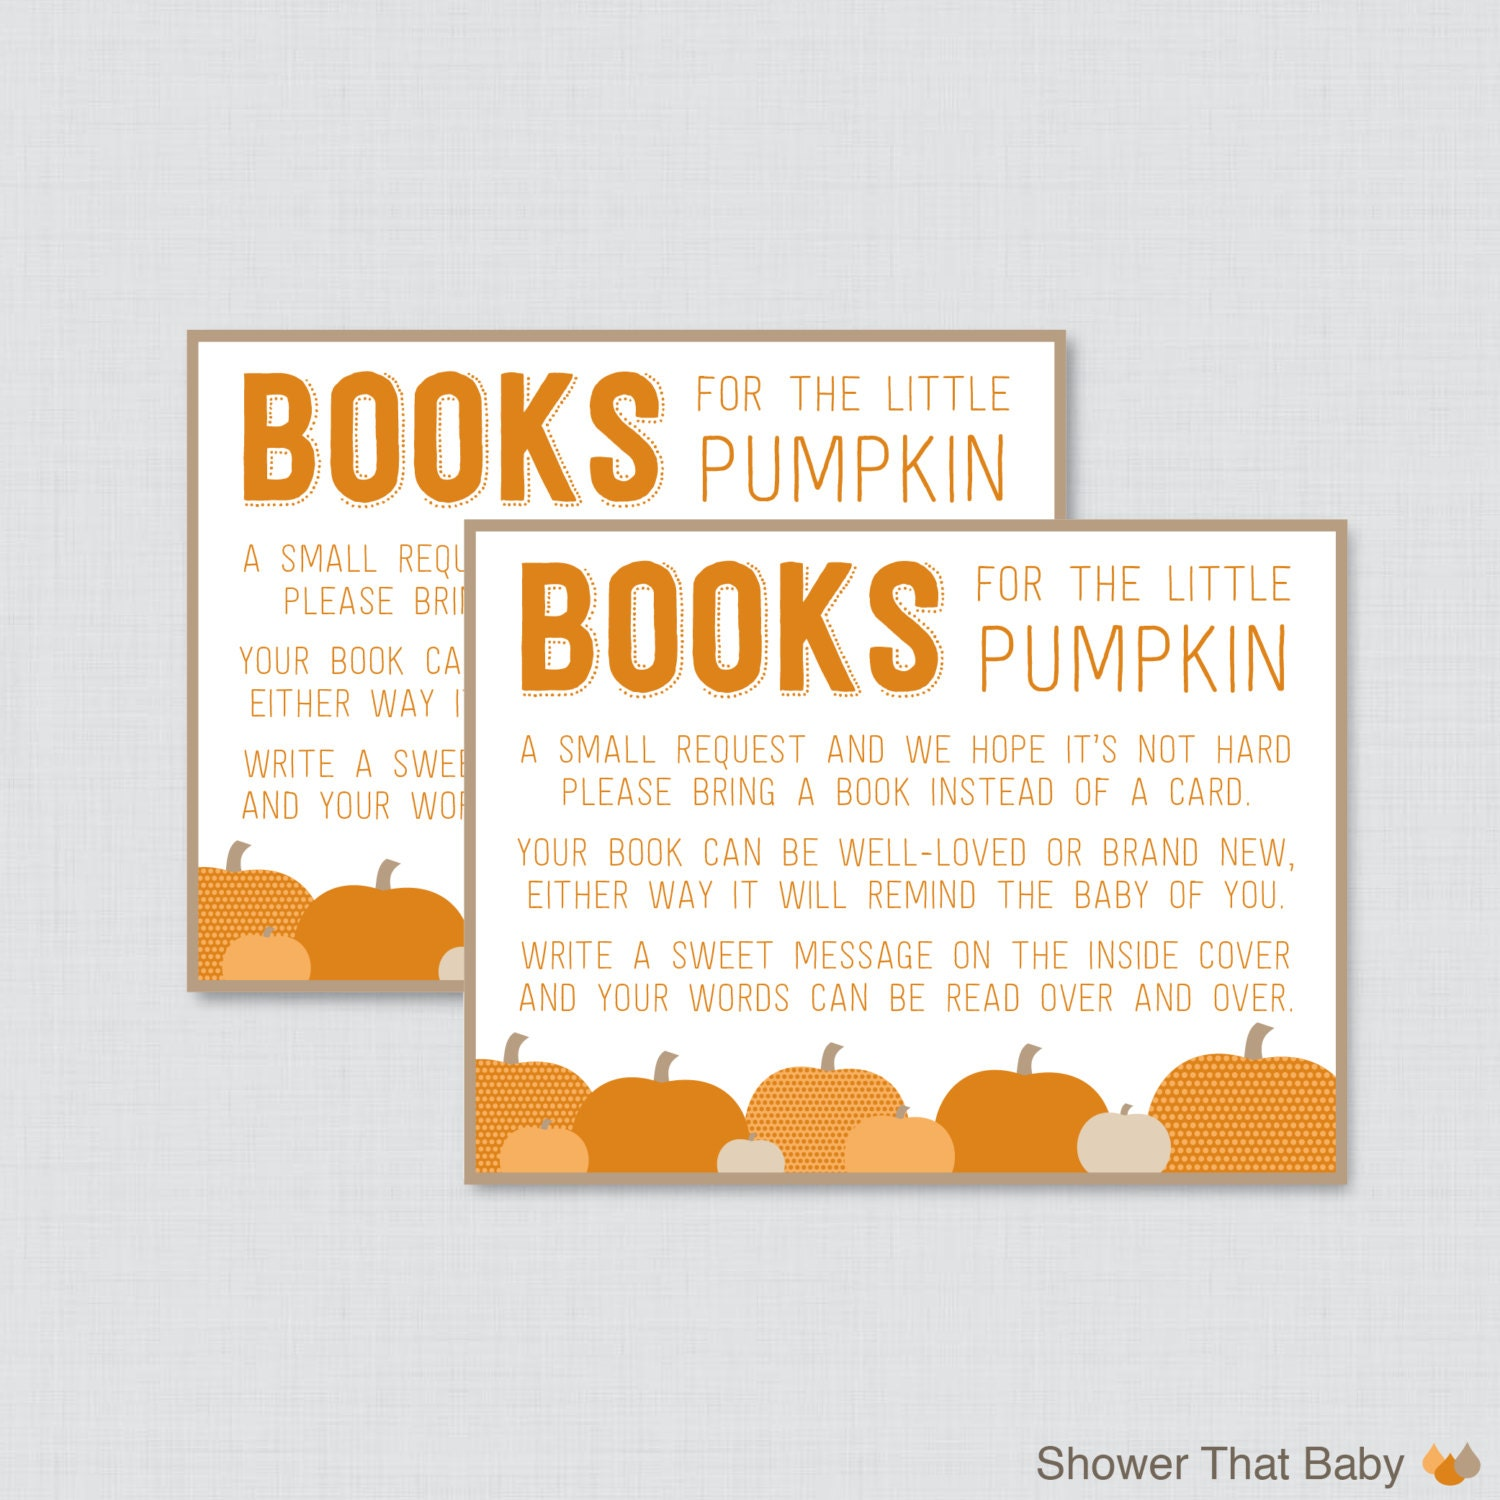 Little Pumpkin Baby Shower Bring a Book Instead of a Card